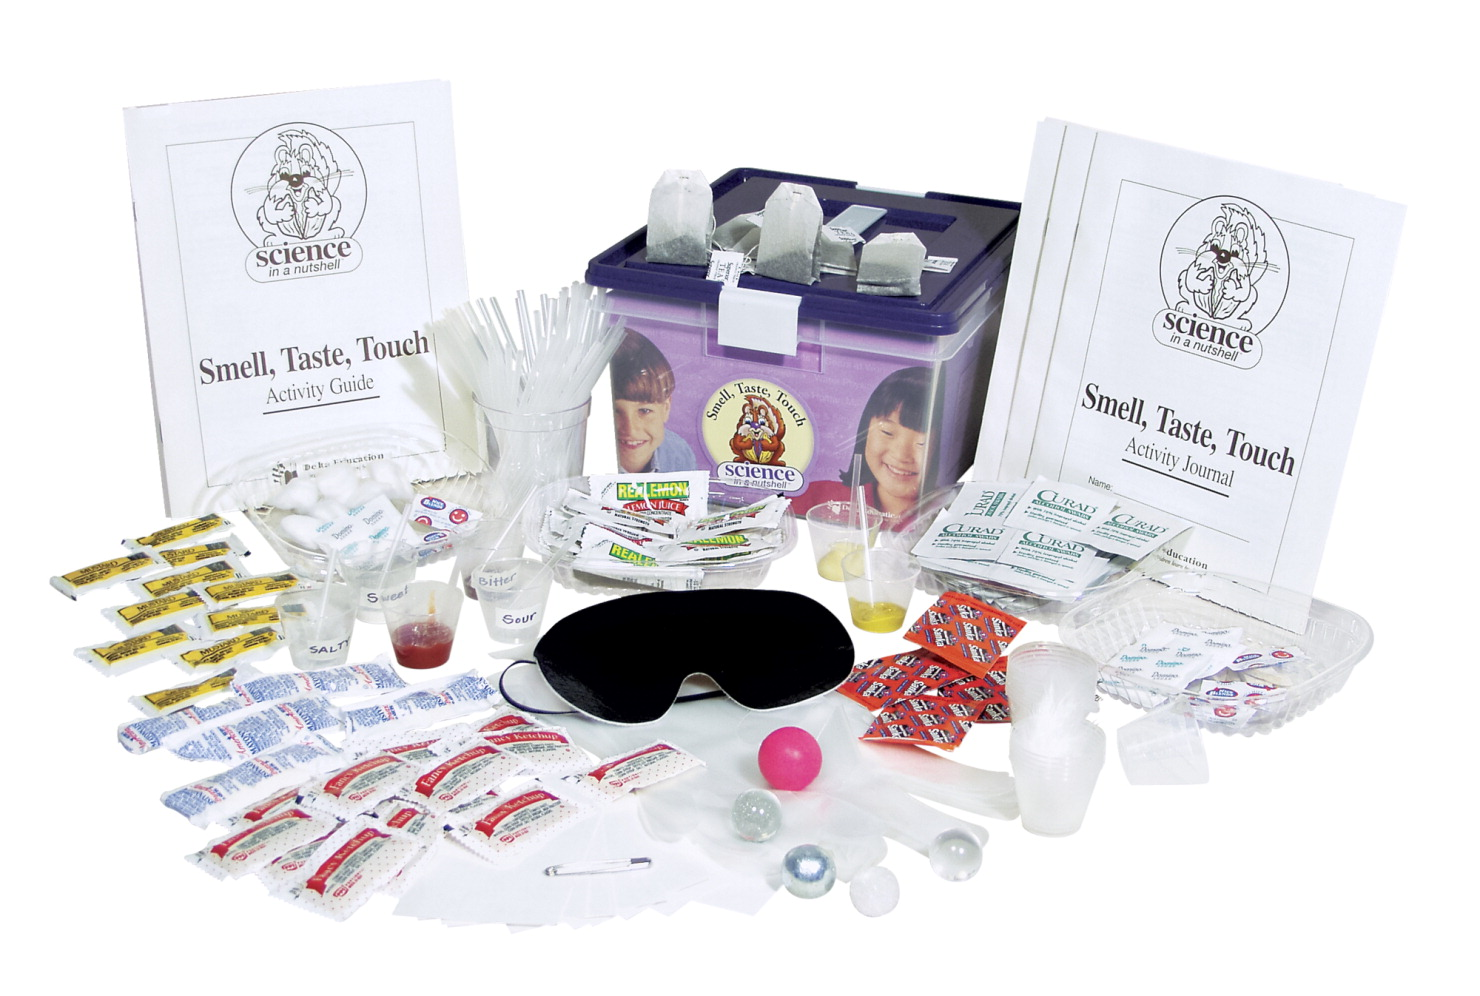 Science in a Nutshell Smell, Taste, Touch Kit